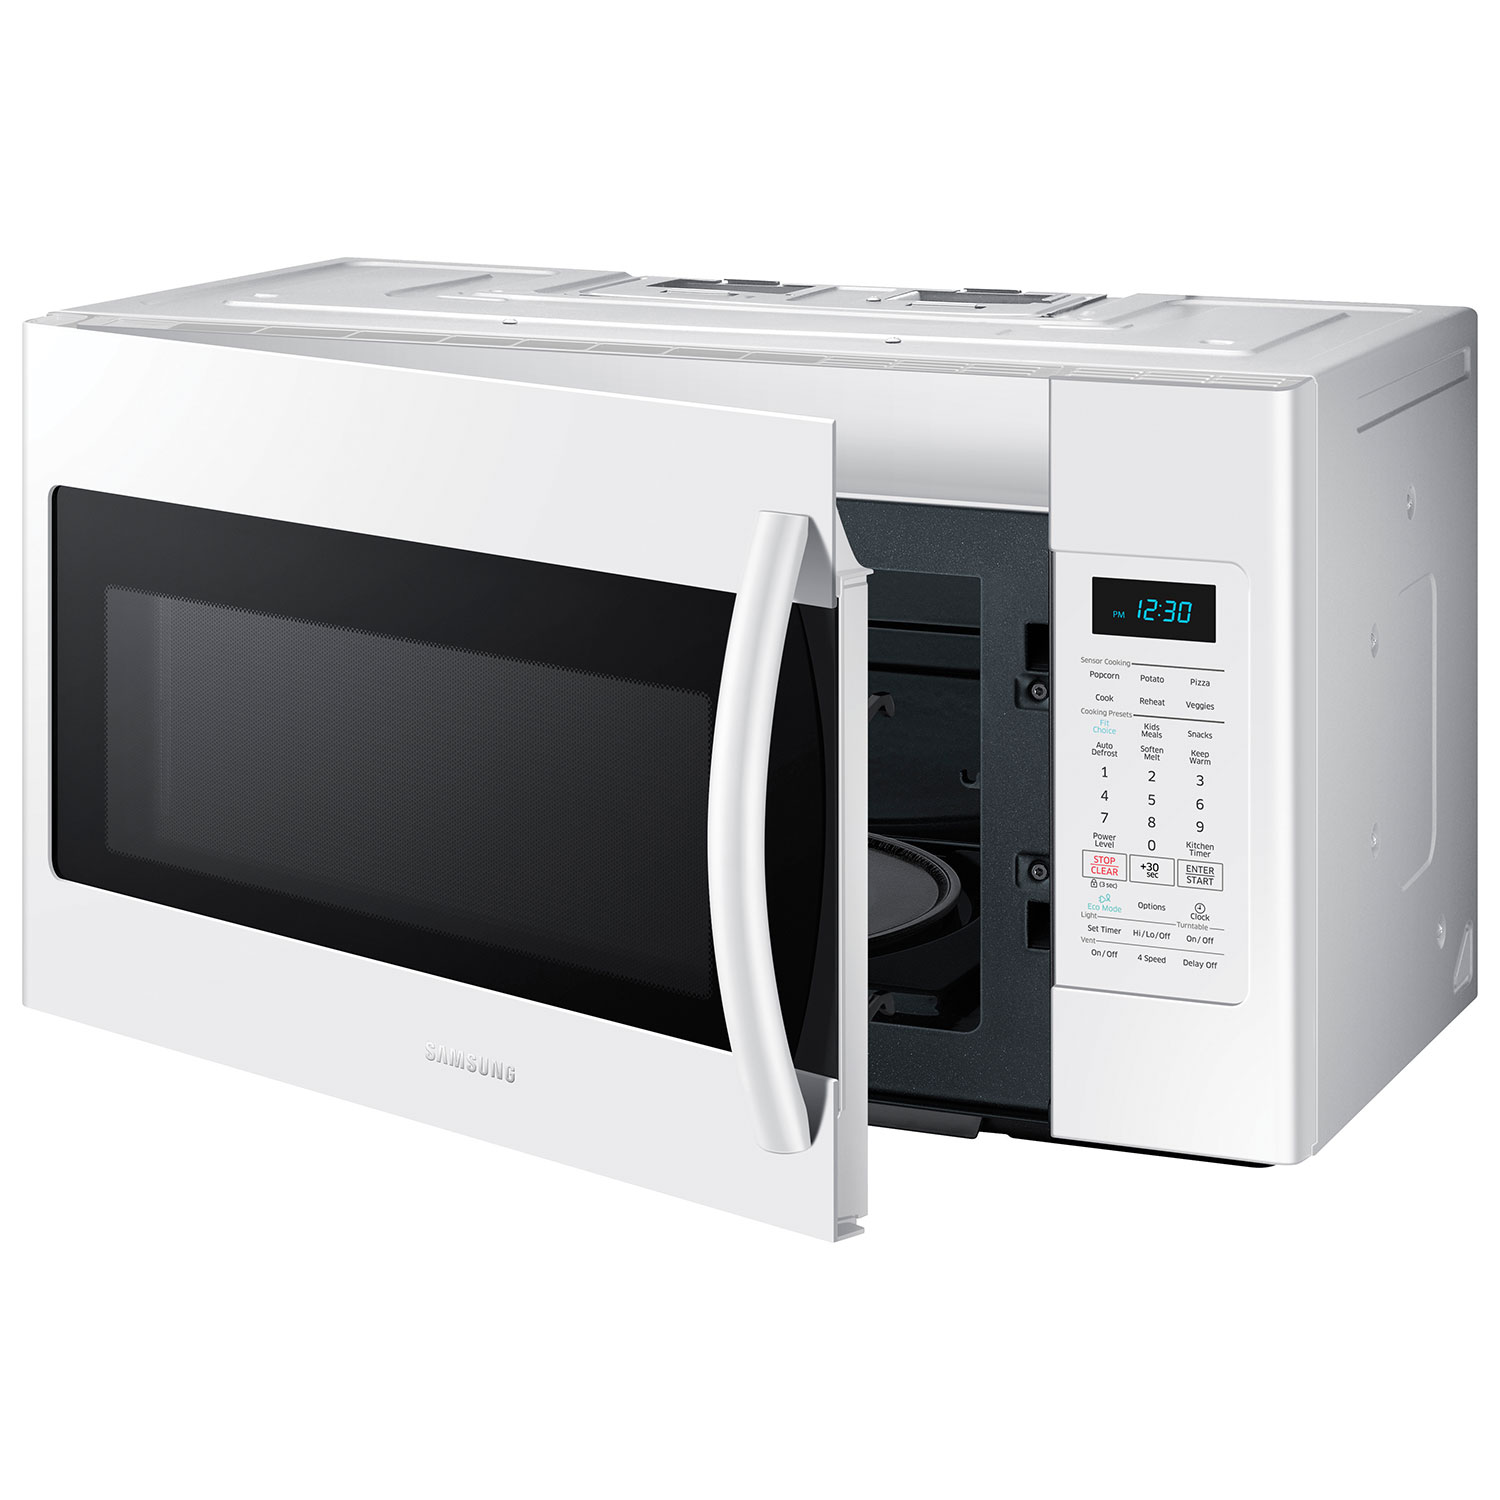 Home kitchen appliances microwaves over the range microwaves - Samsung Over The Range Microwave 1 8 Cu Ft White Over The Range Microwaves Best Buy Canada